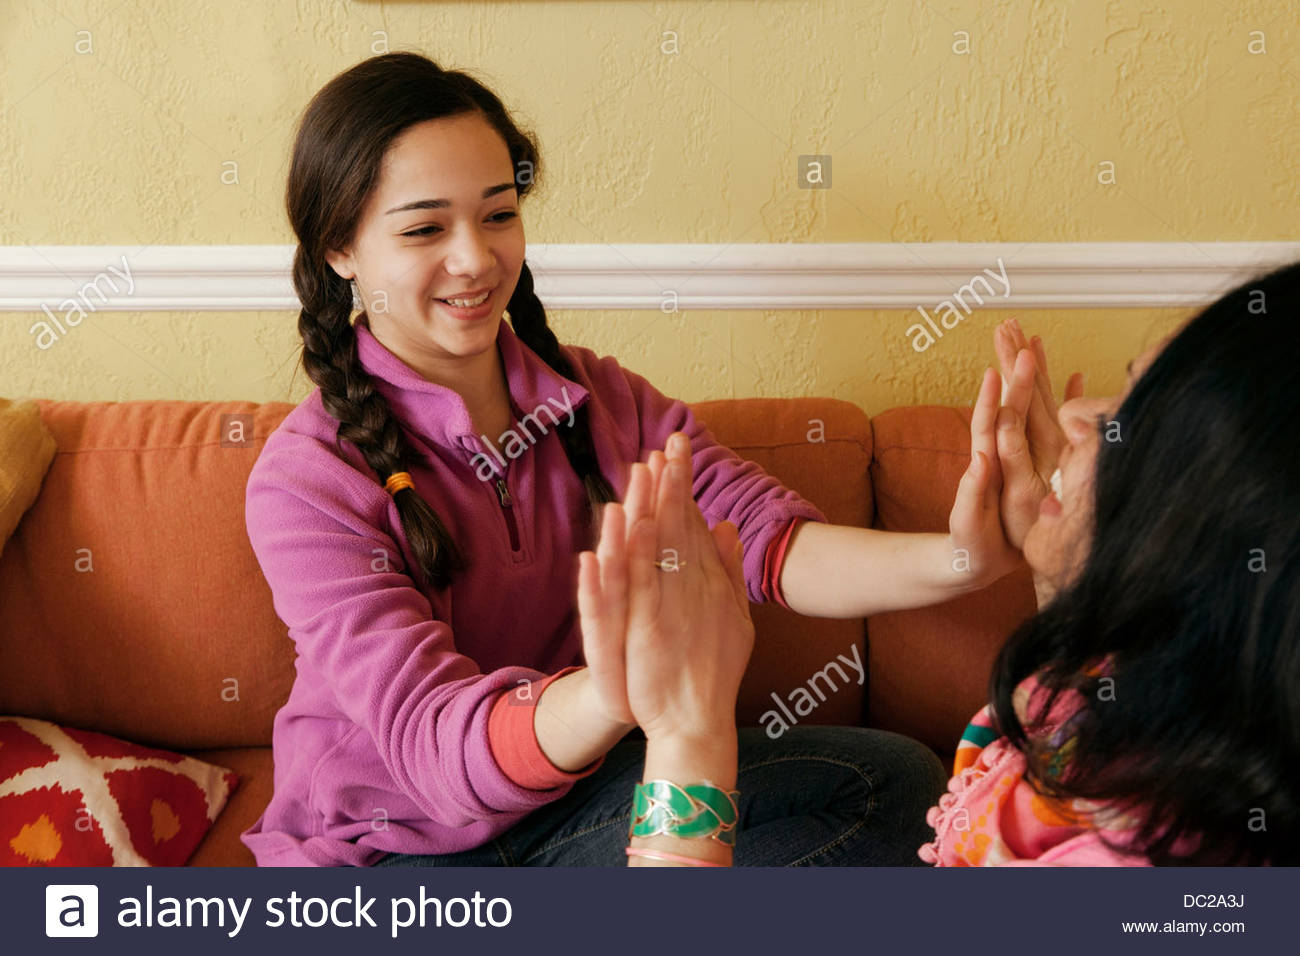 Teenage daughter playing pat a cake with mother - Stock Image